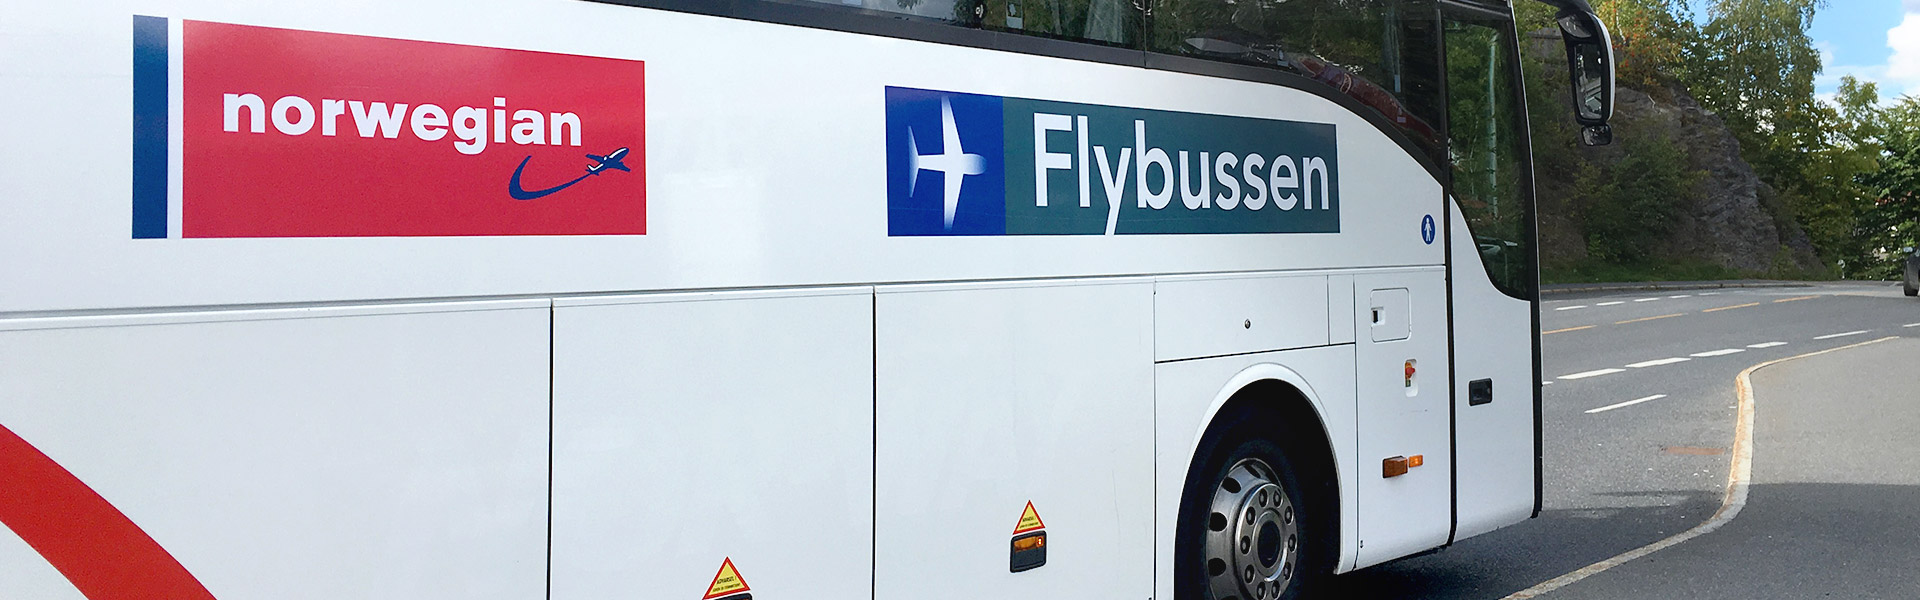 Earn CashPoints with Flybussen and Norwegian Reward